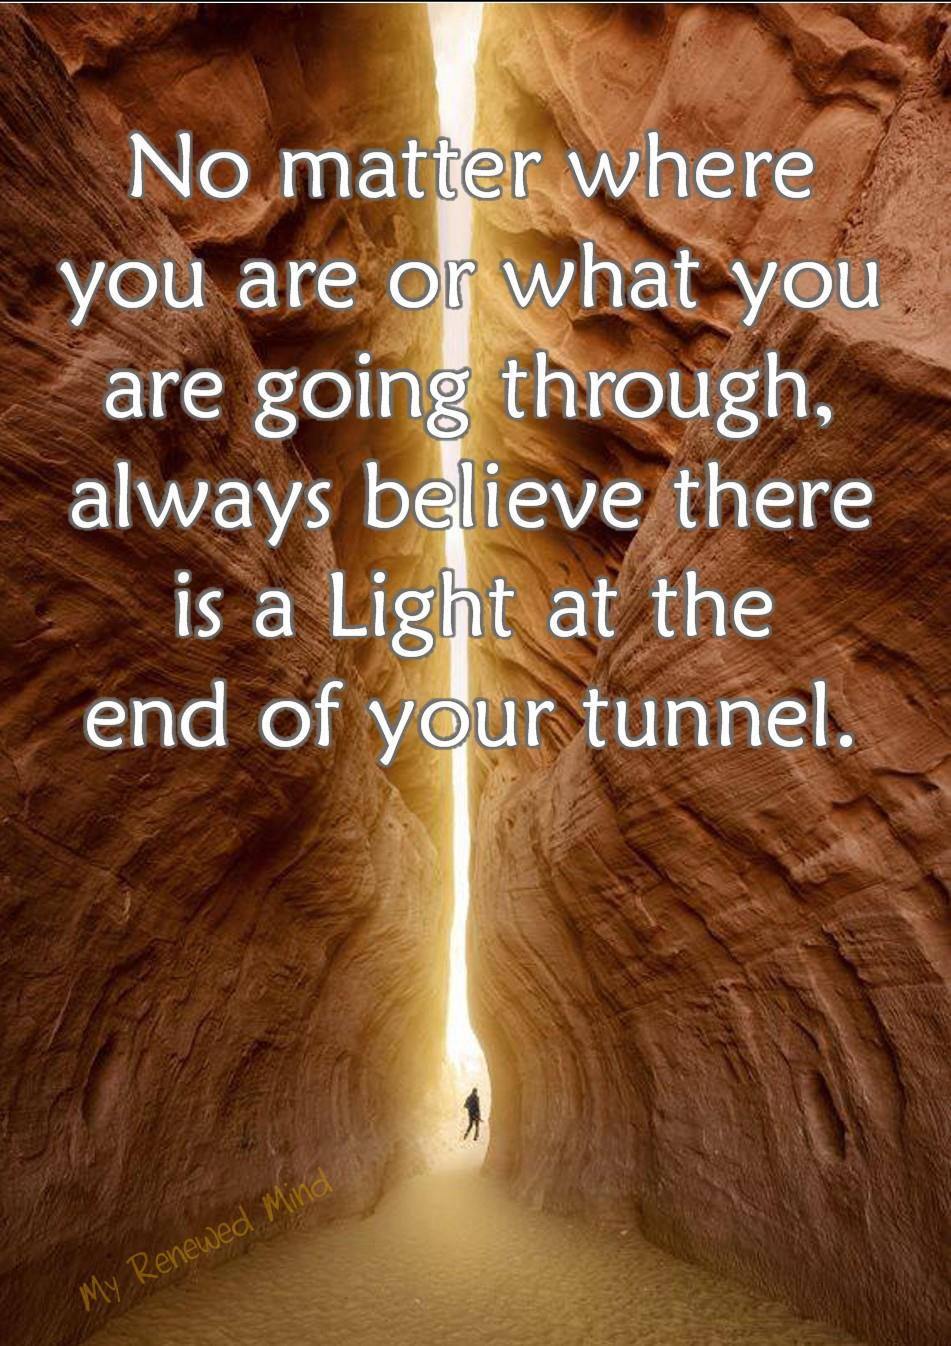 A Light At The End Of The Tunnel Quote Surprising Lives